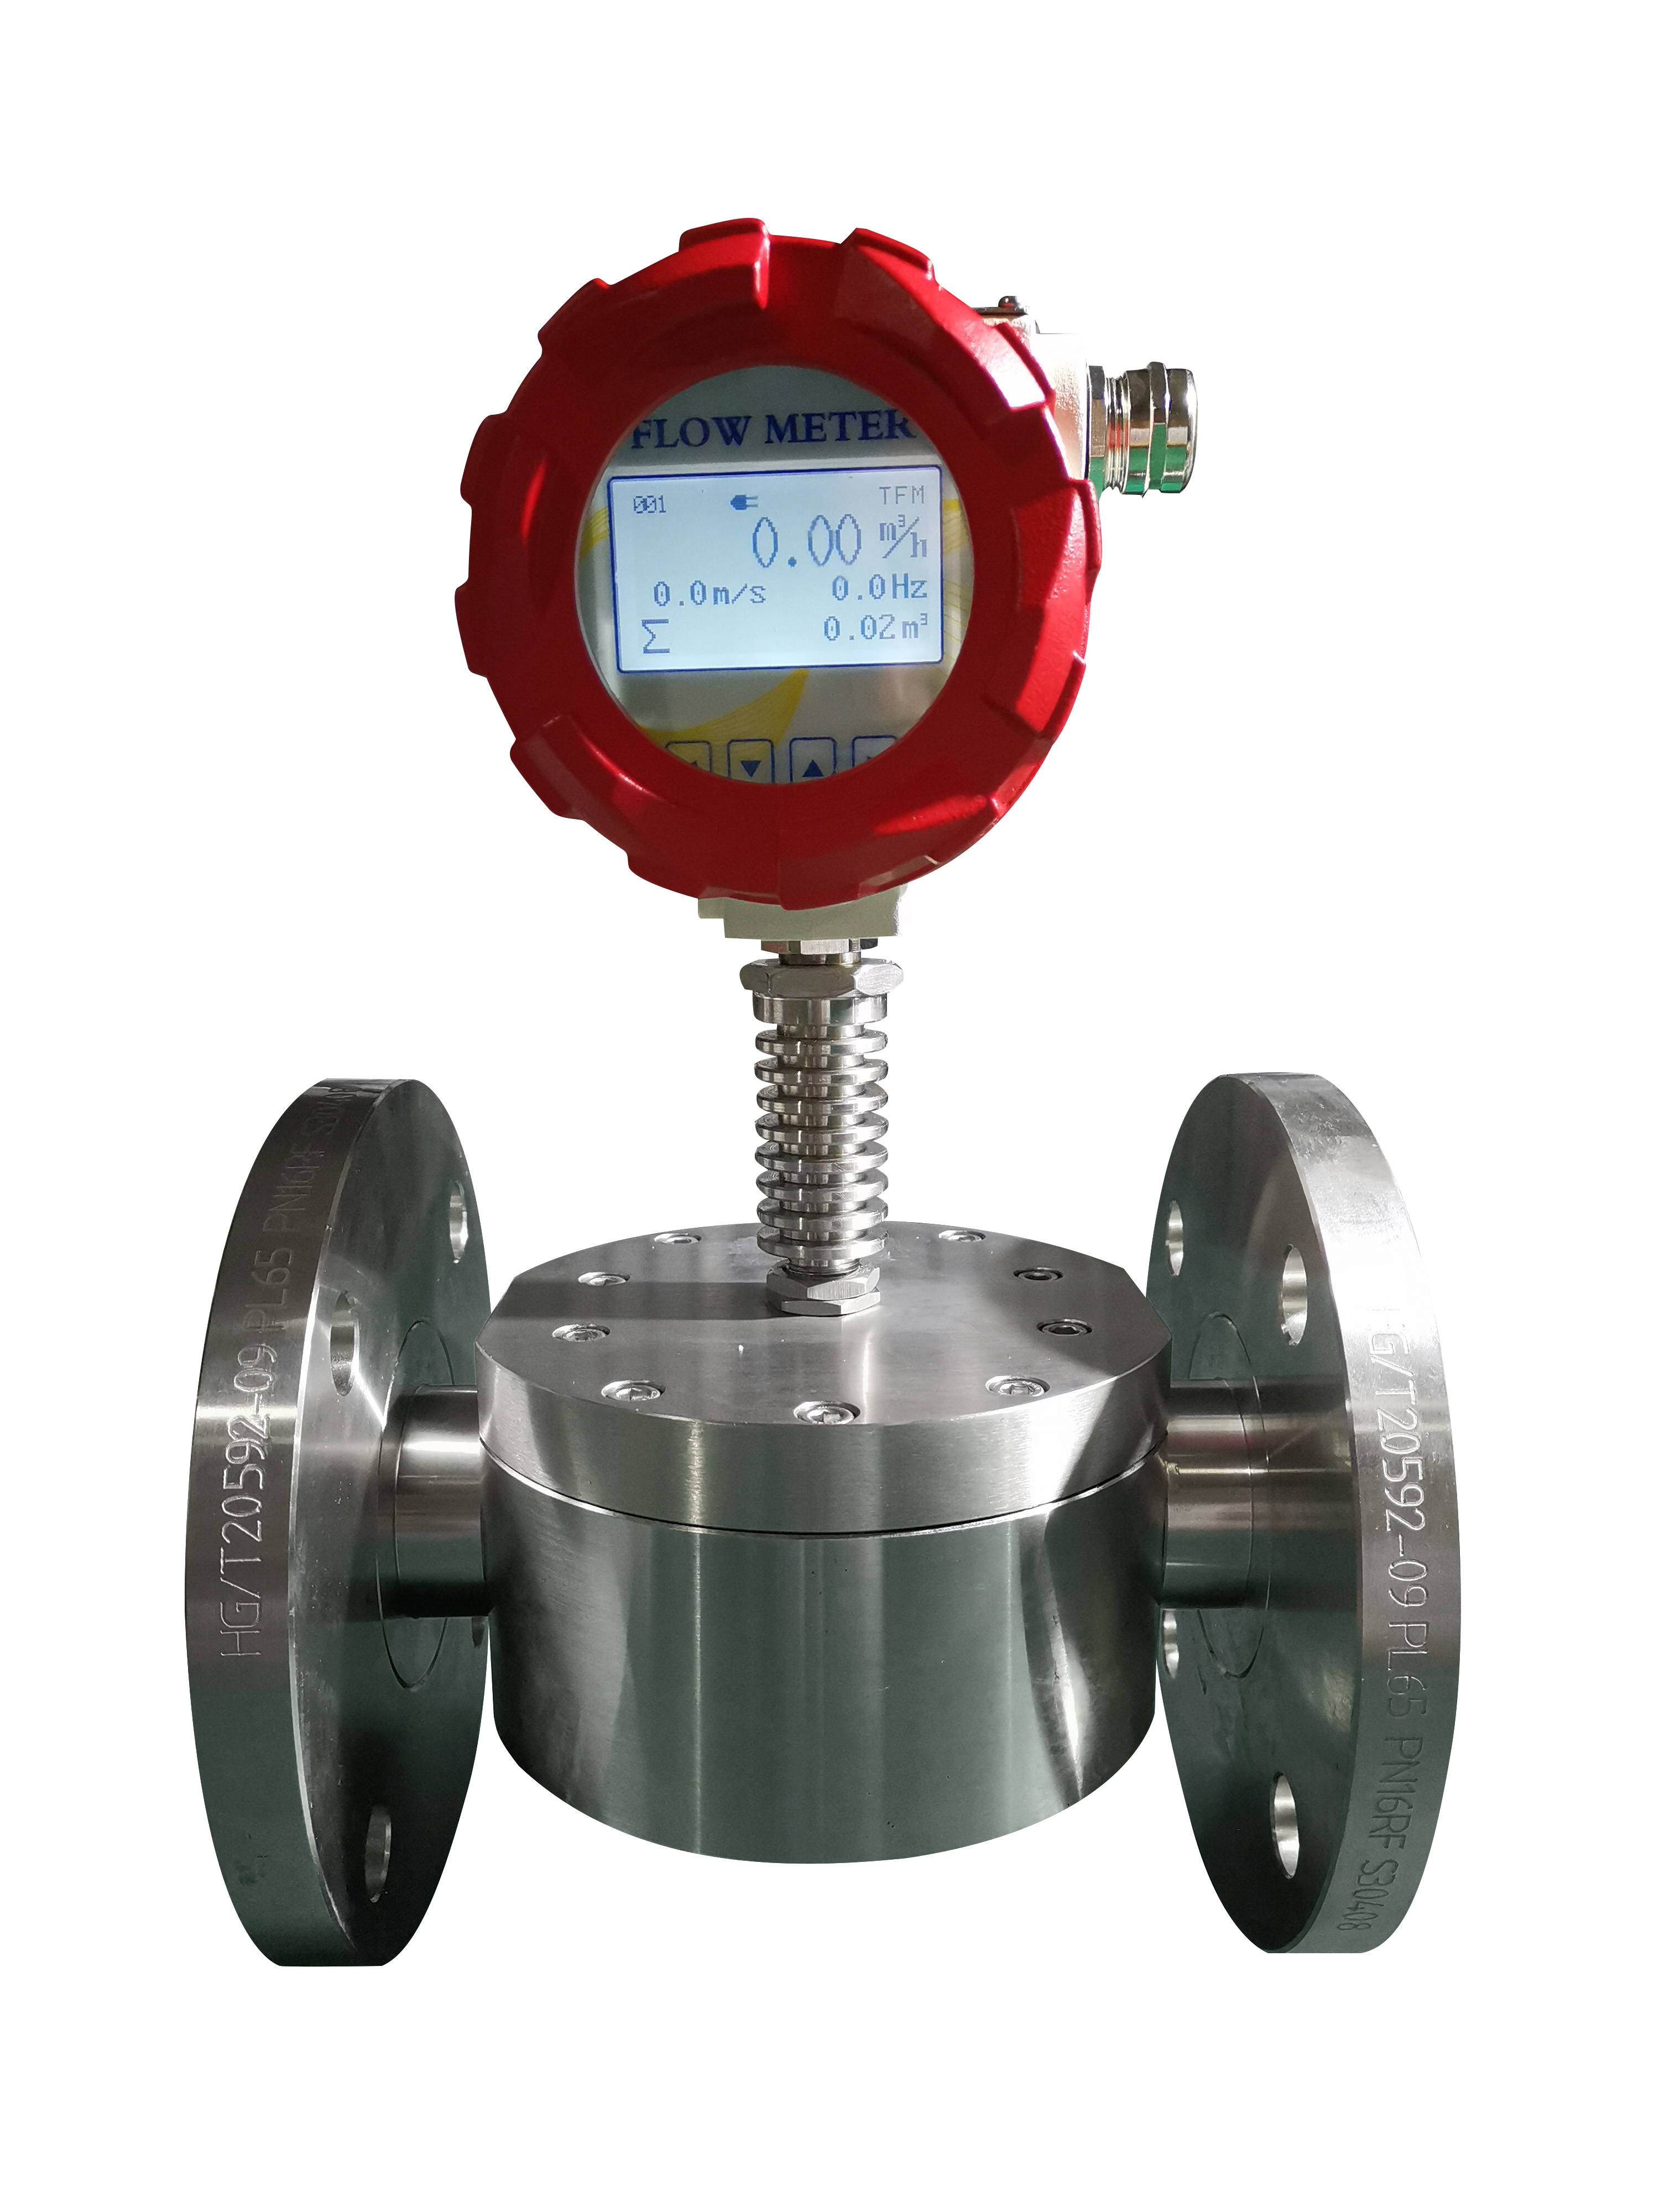 Oval gear flow meter and Coriolis Flow meter to be used as digital chemical flow meter